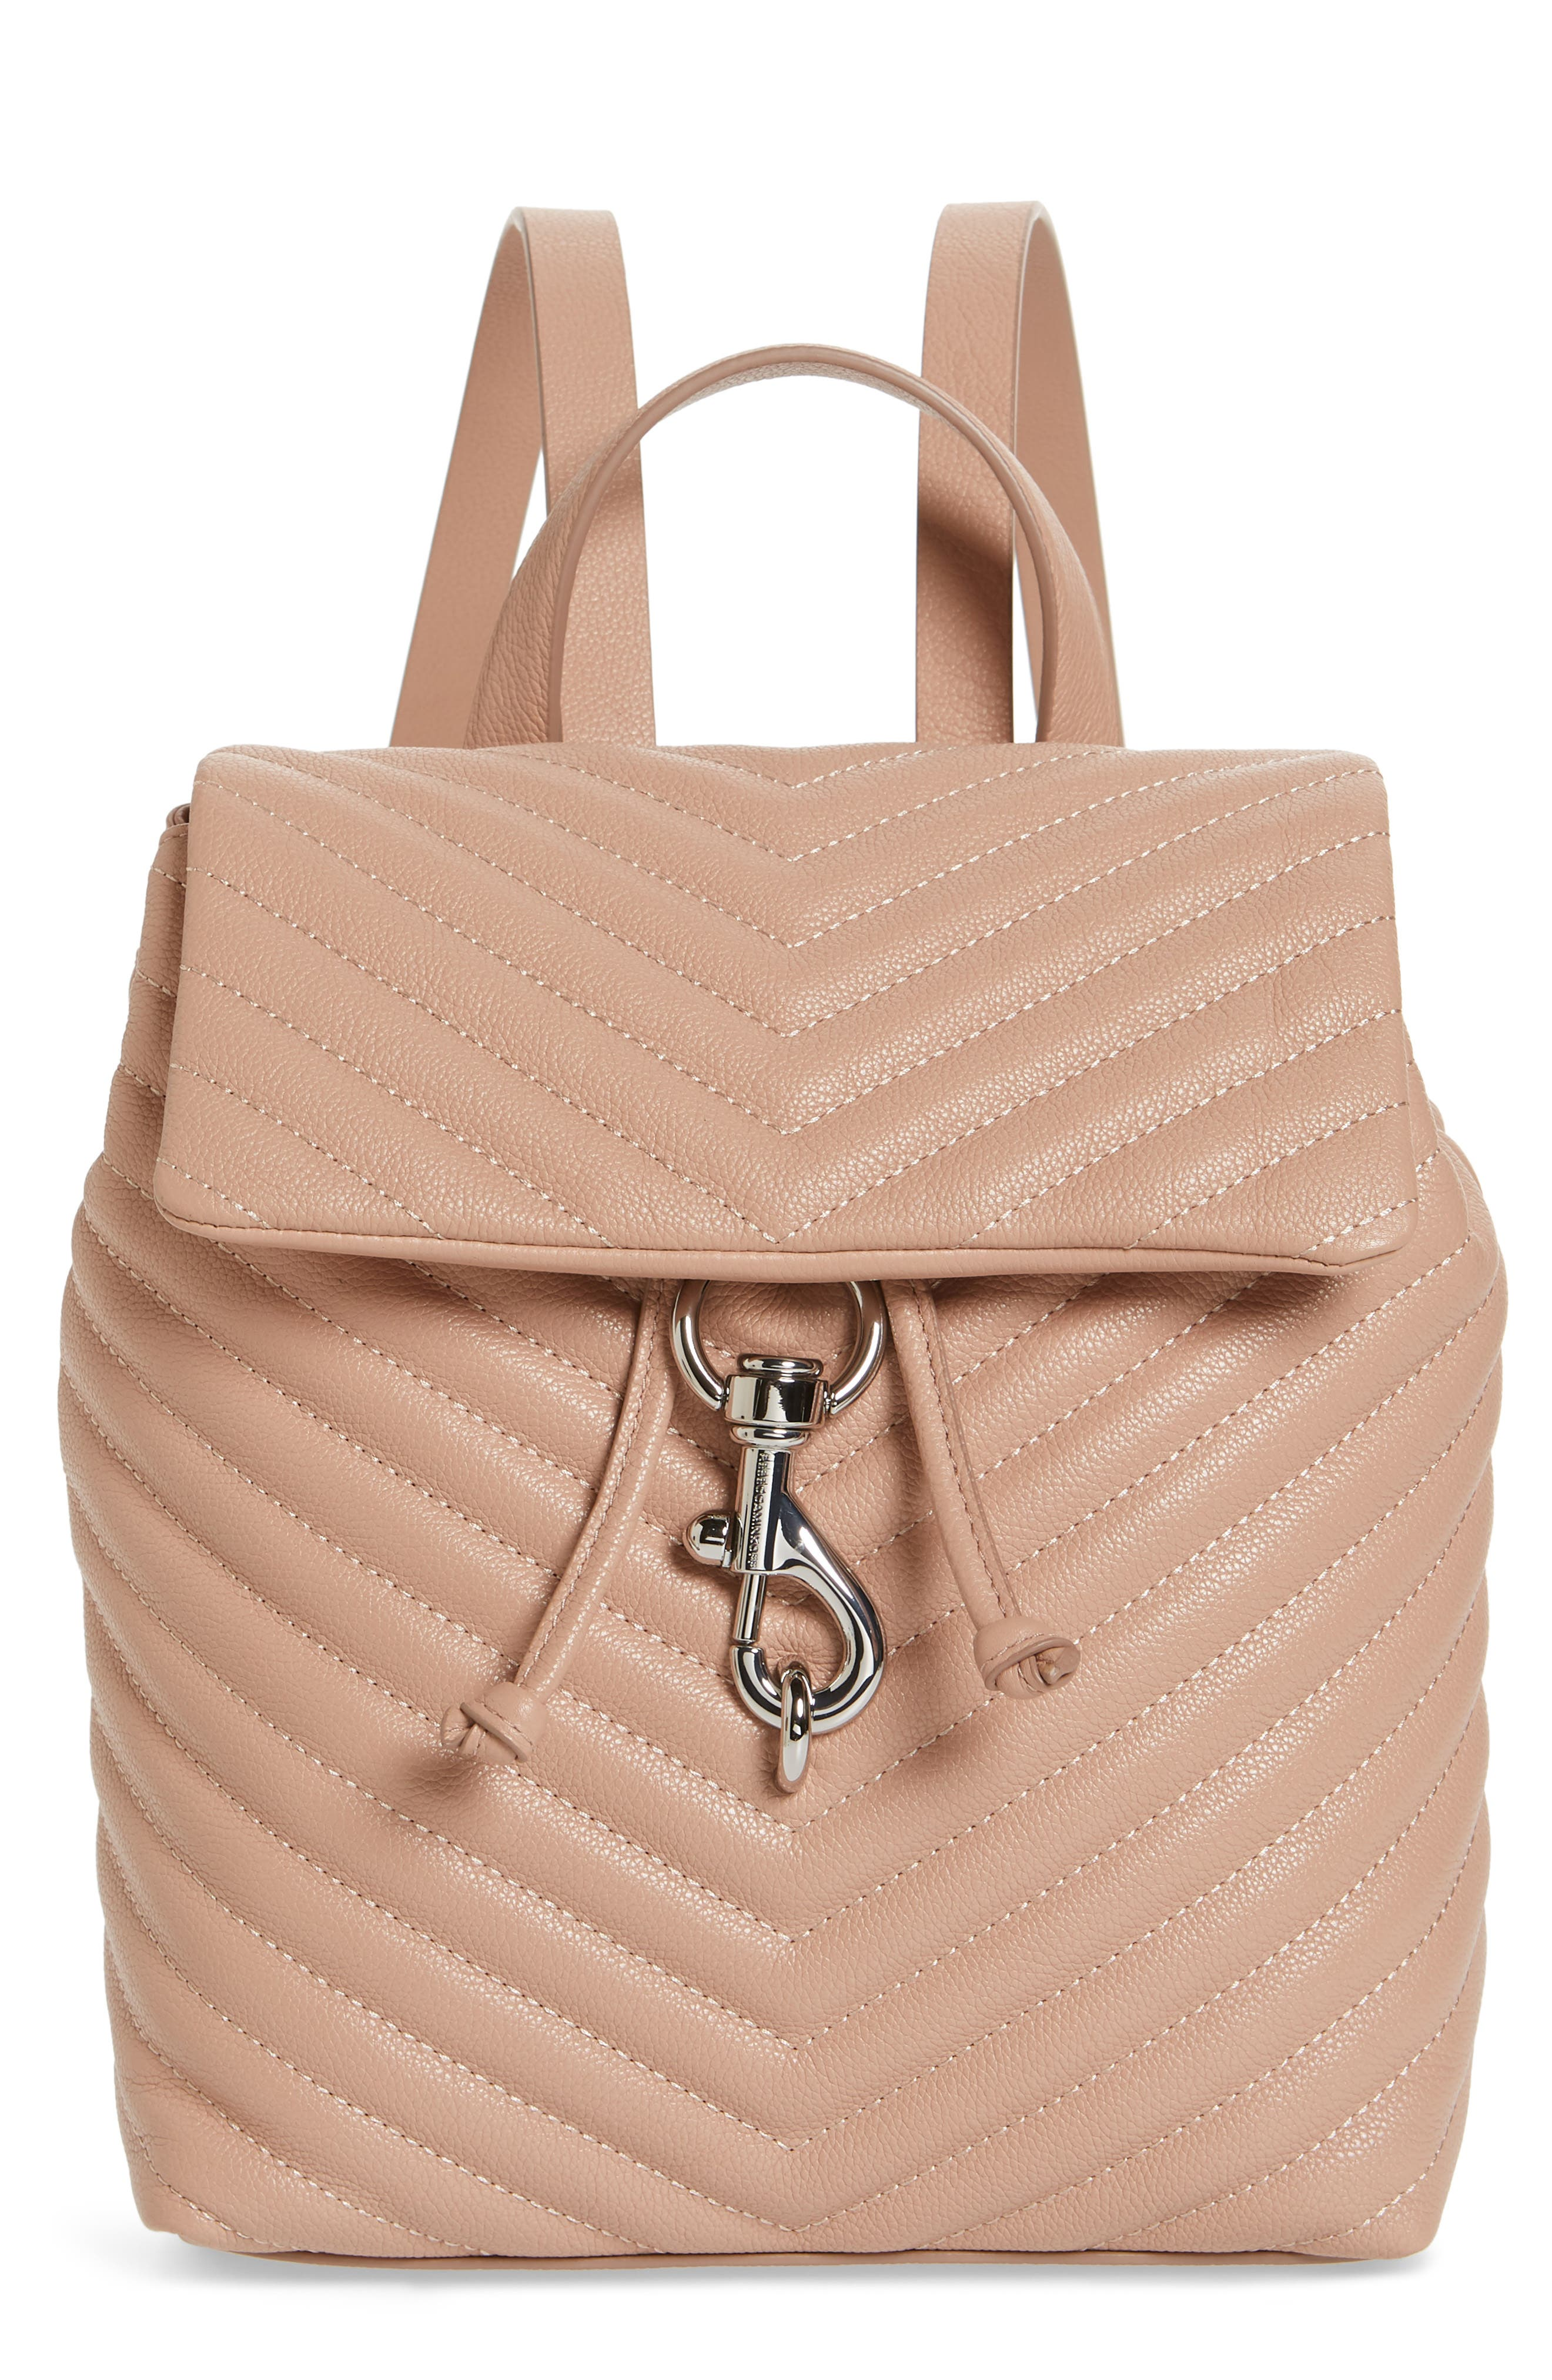 Edie Quilted Leather Backpack - Beige in Doe